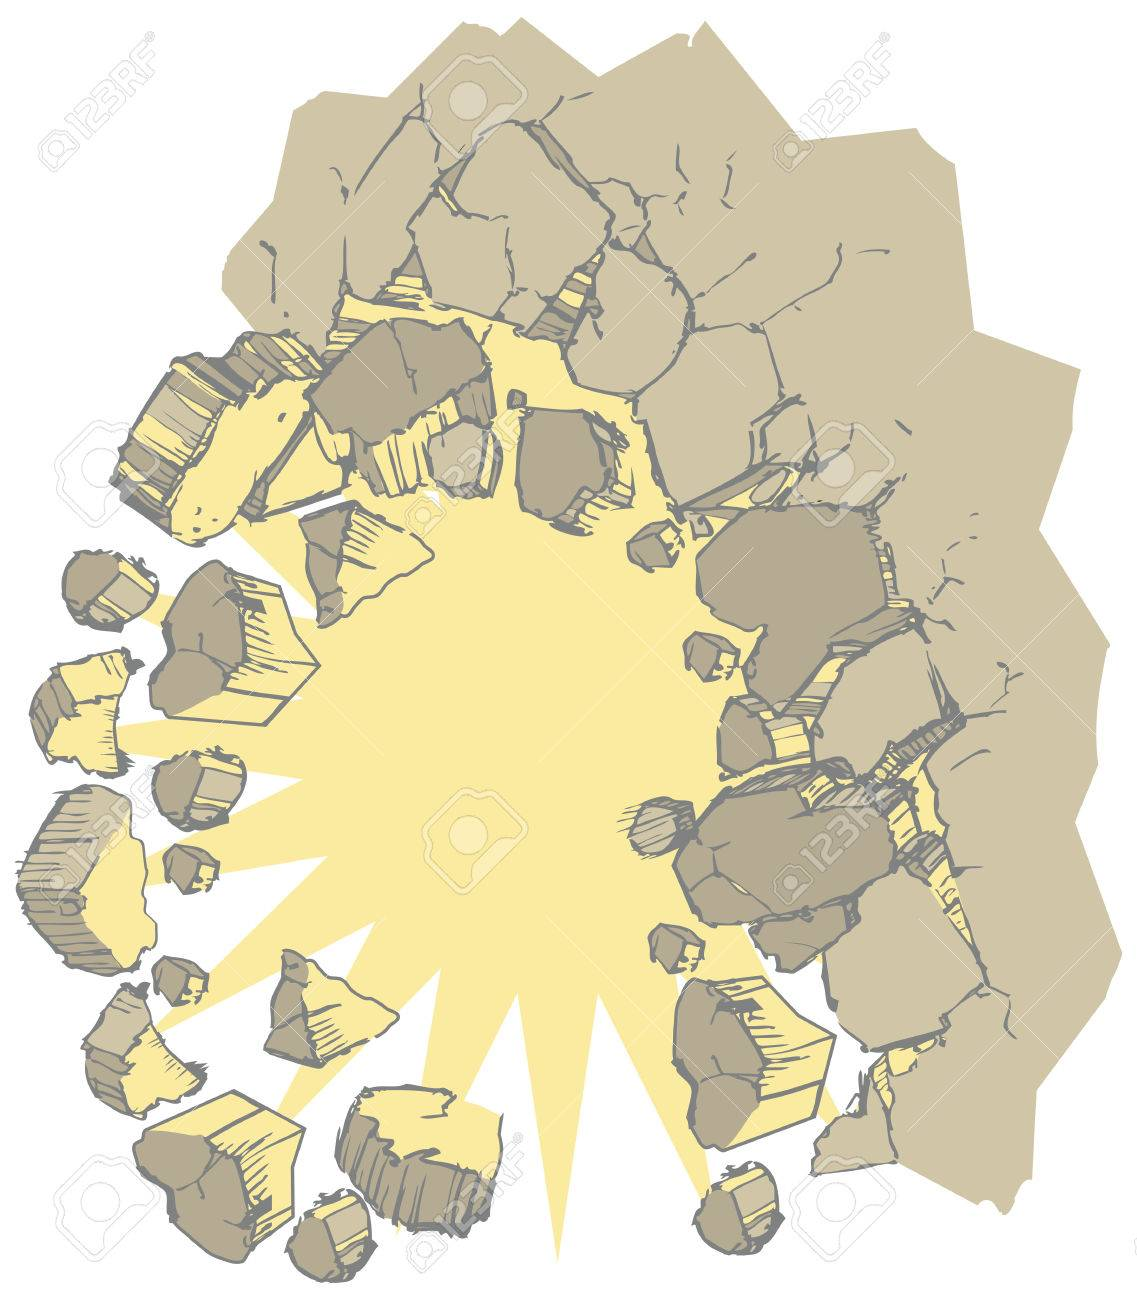 Vector Clip Art Illustration Of A Wall Exploding Outward Creating ...